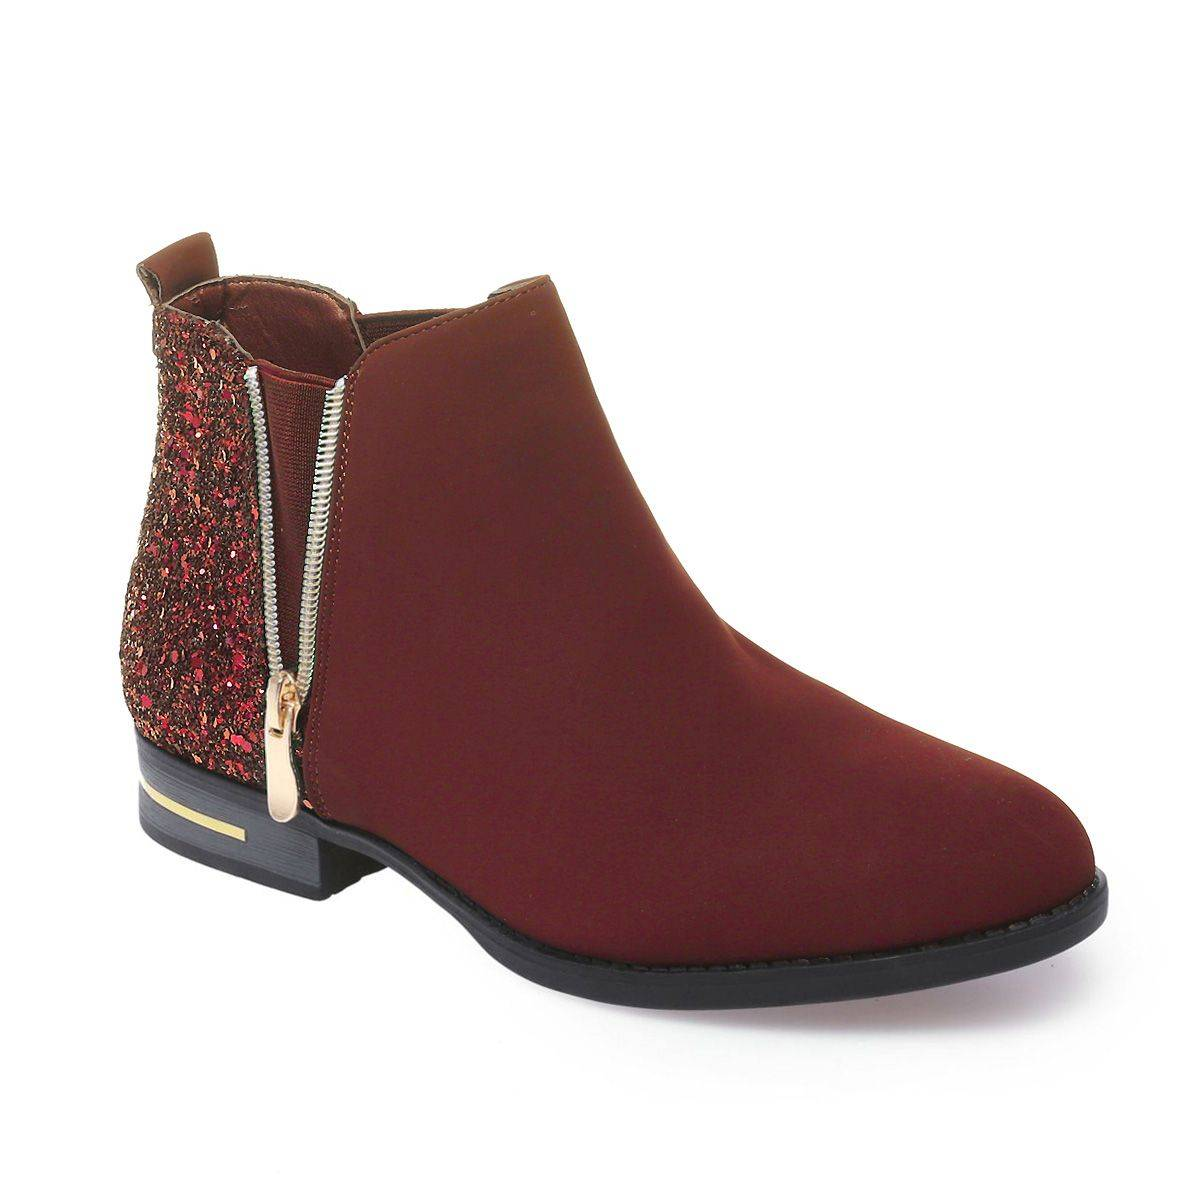 La Modeuse Bottines chelsea à paillettes bordeaux